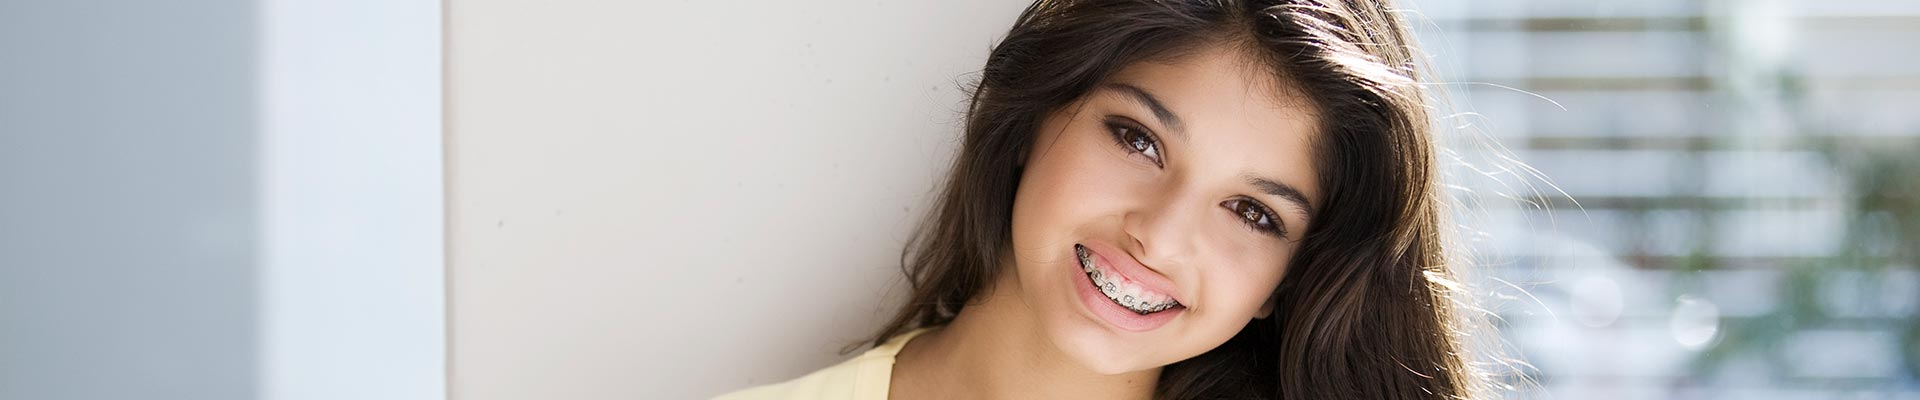 braces Nebraska Orthodontics South Lincoln NE